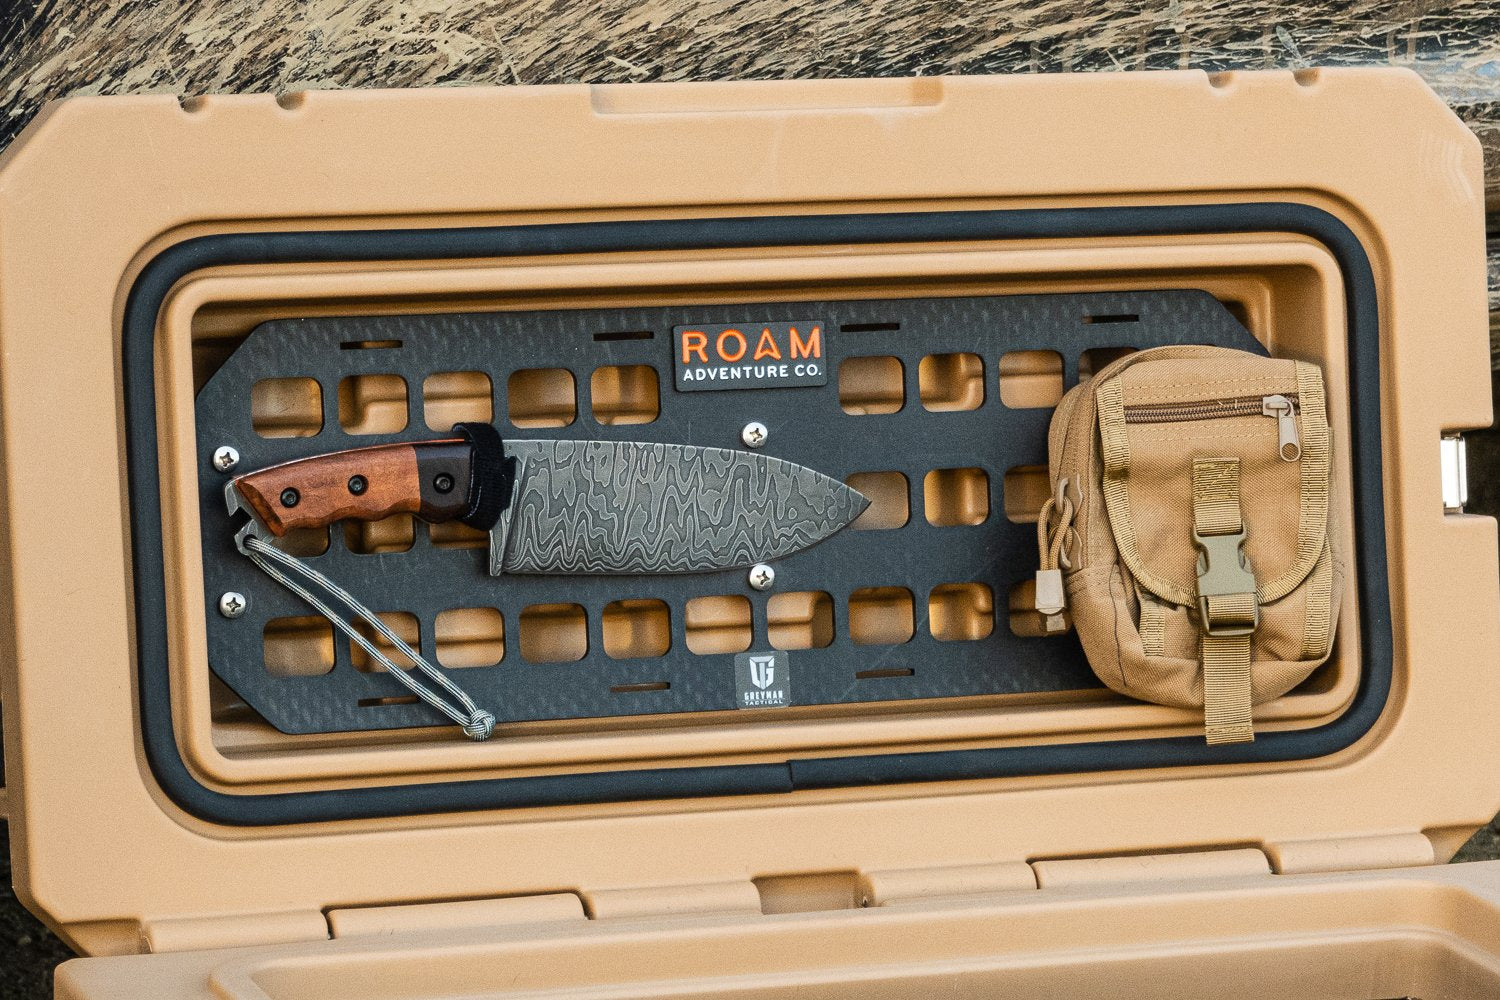 ROAM - RUGGED CASE MOLLE PANEL - 4x4 Runners